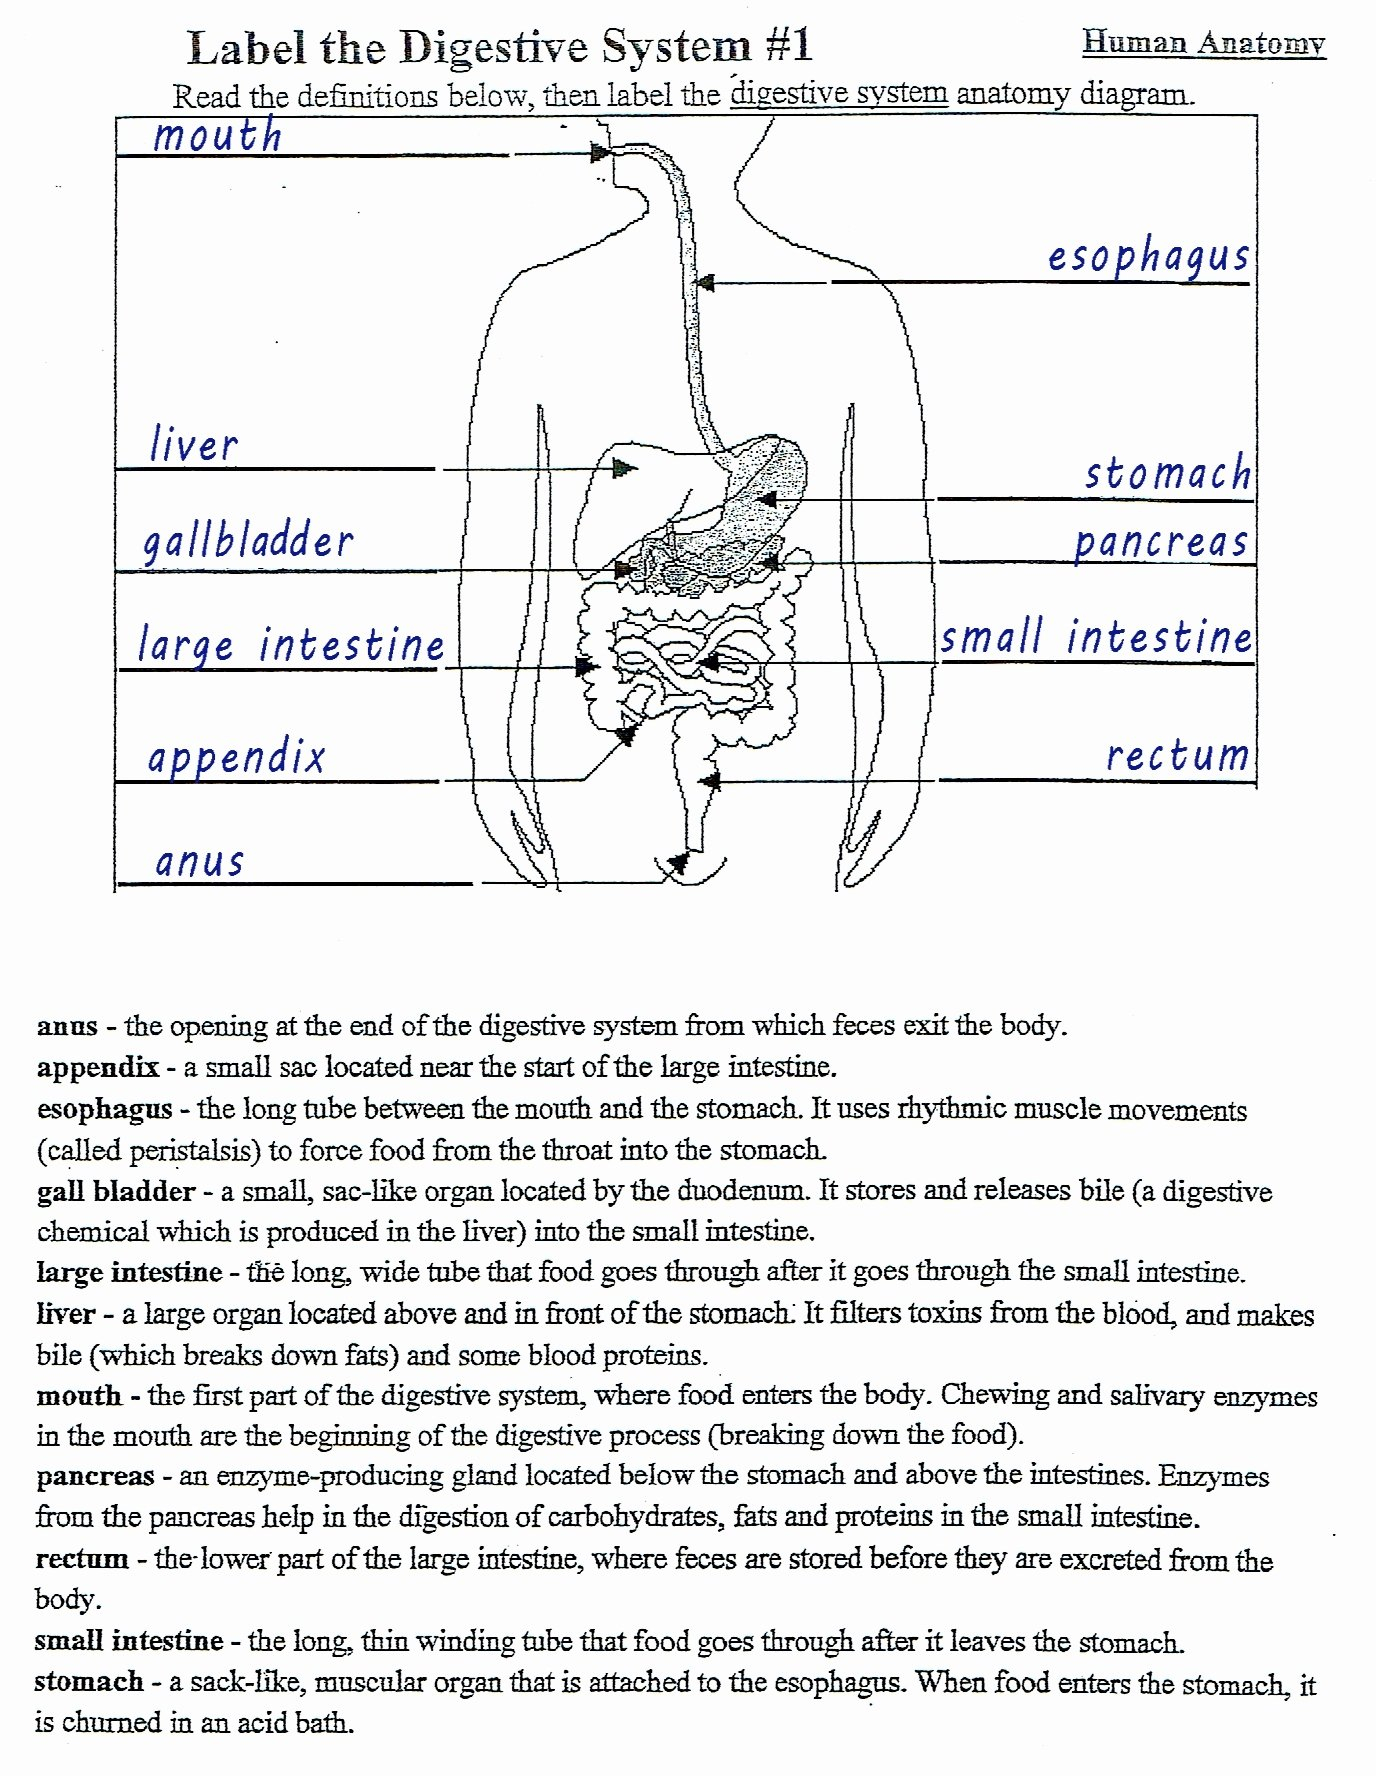 Ideas Of Anatomy Of The Digestive System Worksheet Answers Image Within Digestive System Worksheet Answers